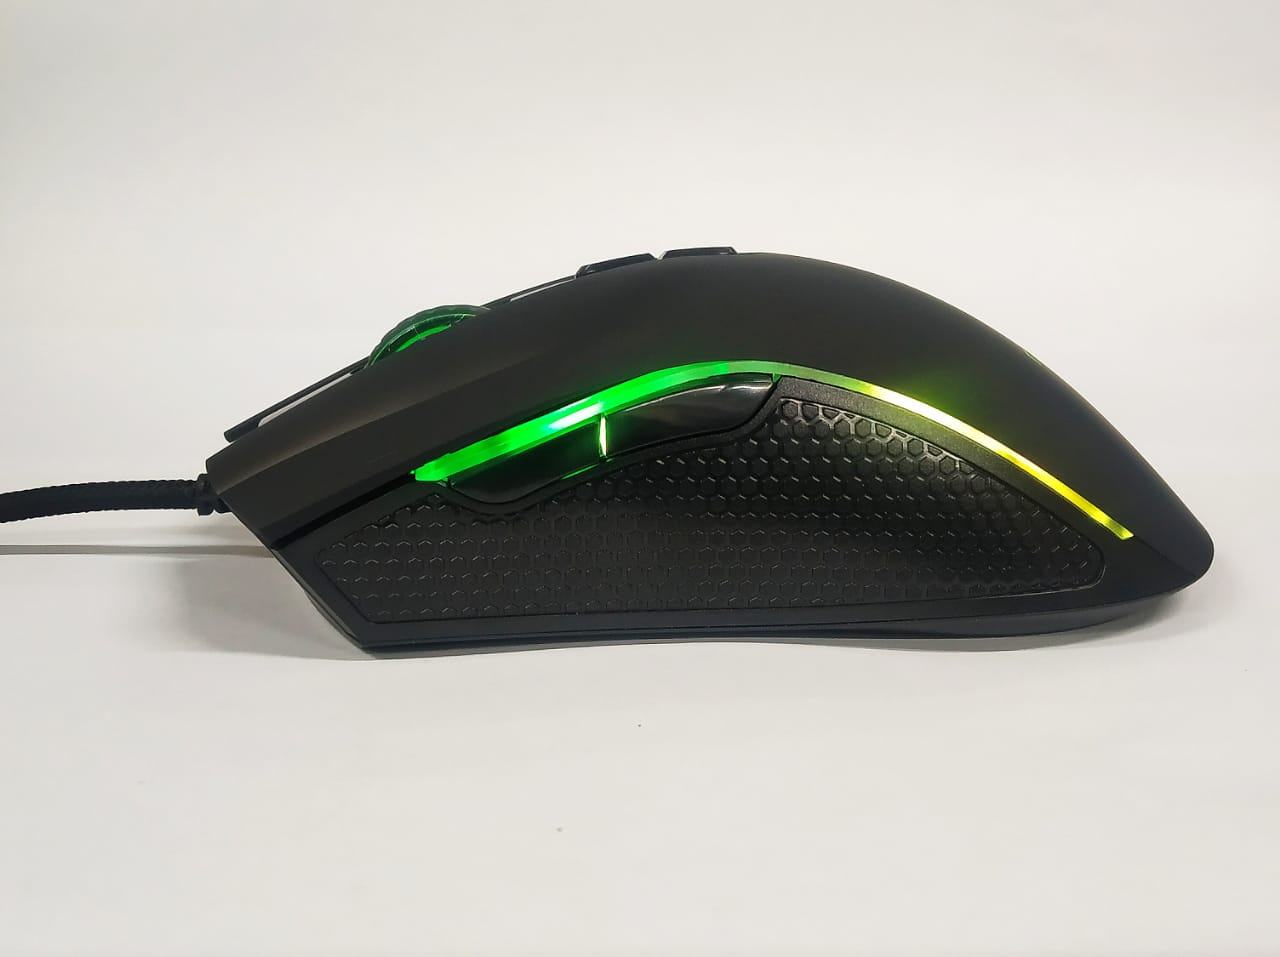 mobilegear spark optical 7D High precision gaming mouse